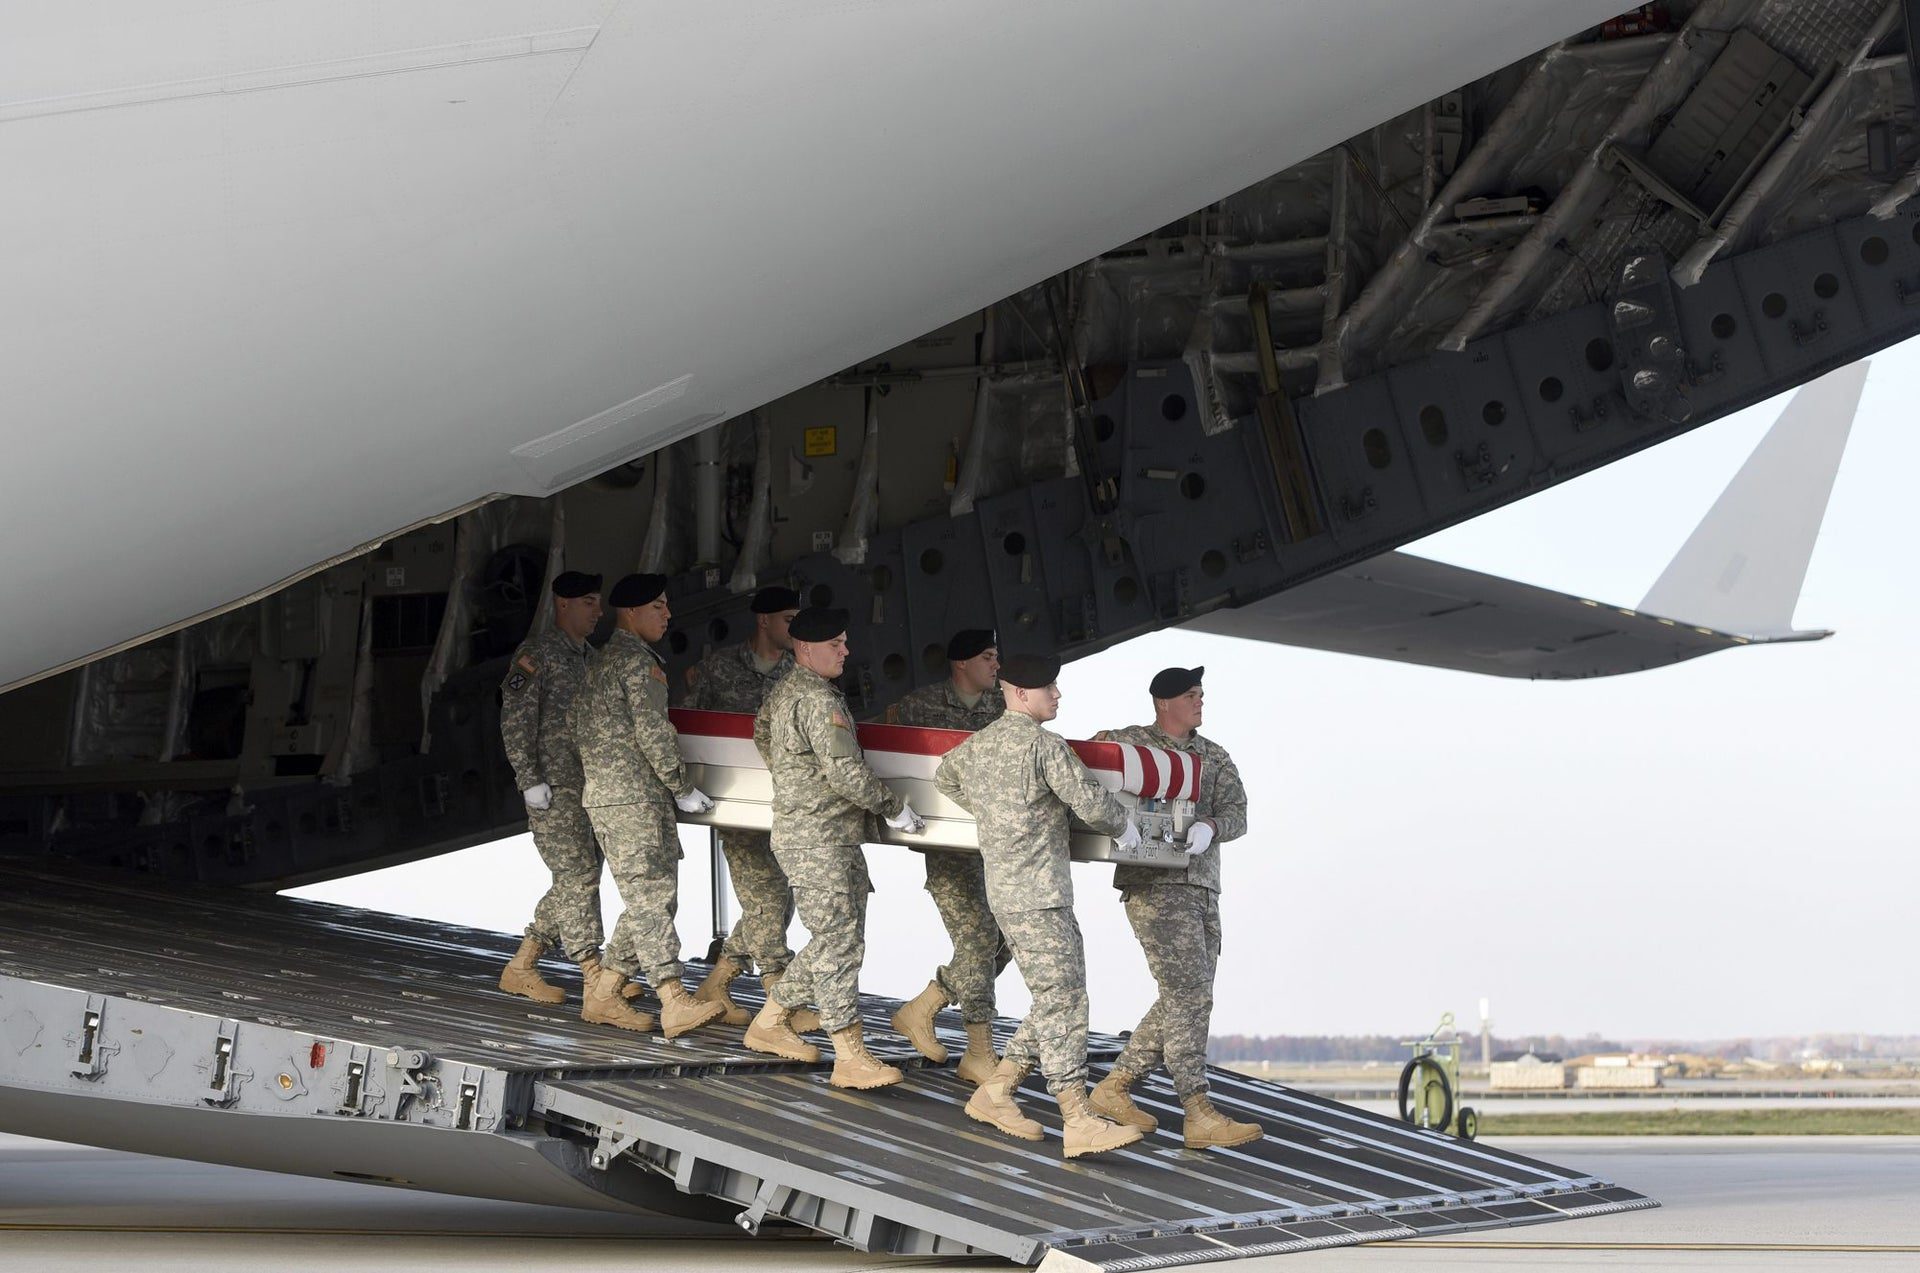 An Army carry team moves a transfer case containing the remains of Pfc. Tyler R. Iubelt at Dover Air Force Base, Del., Tuesday, Nov. 15, 2016. According to the Department of Defense, Iubelt, 20, of Tamaroa, Ill., died Nov. 12 of injuries sustained from an improvised explosive device in Bagram, Afghanistan while supporting Operation Freedom's Sentinel.